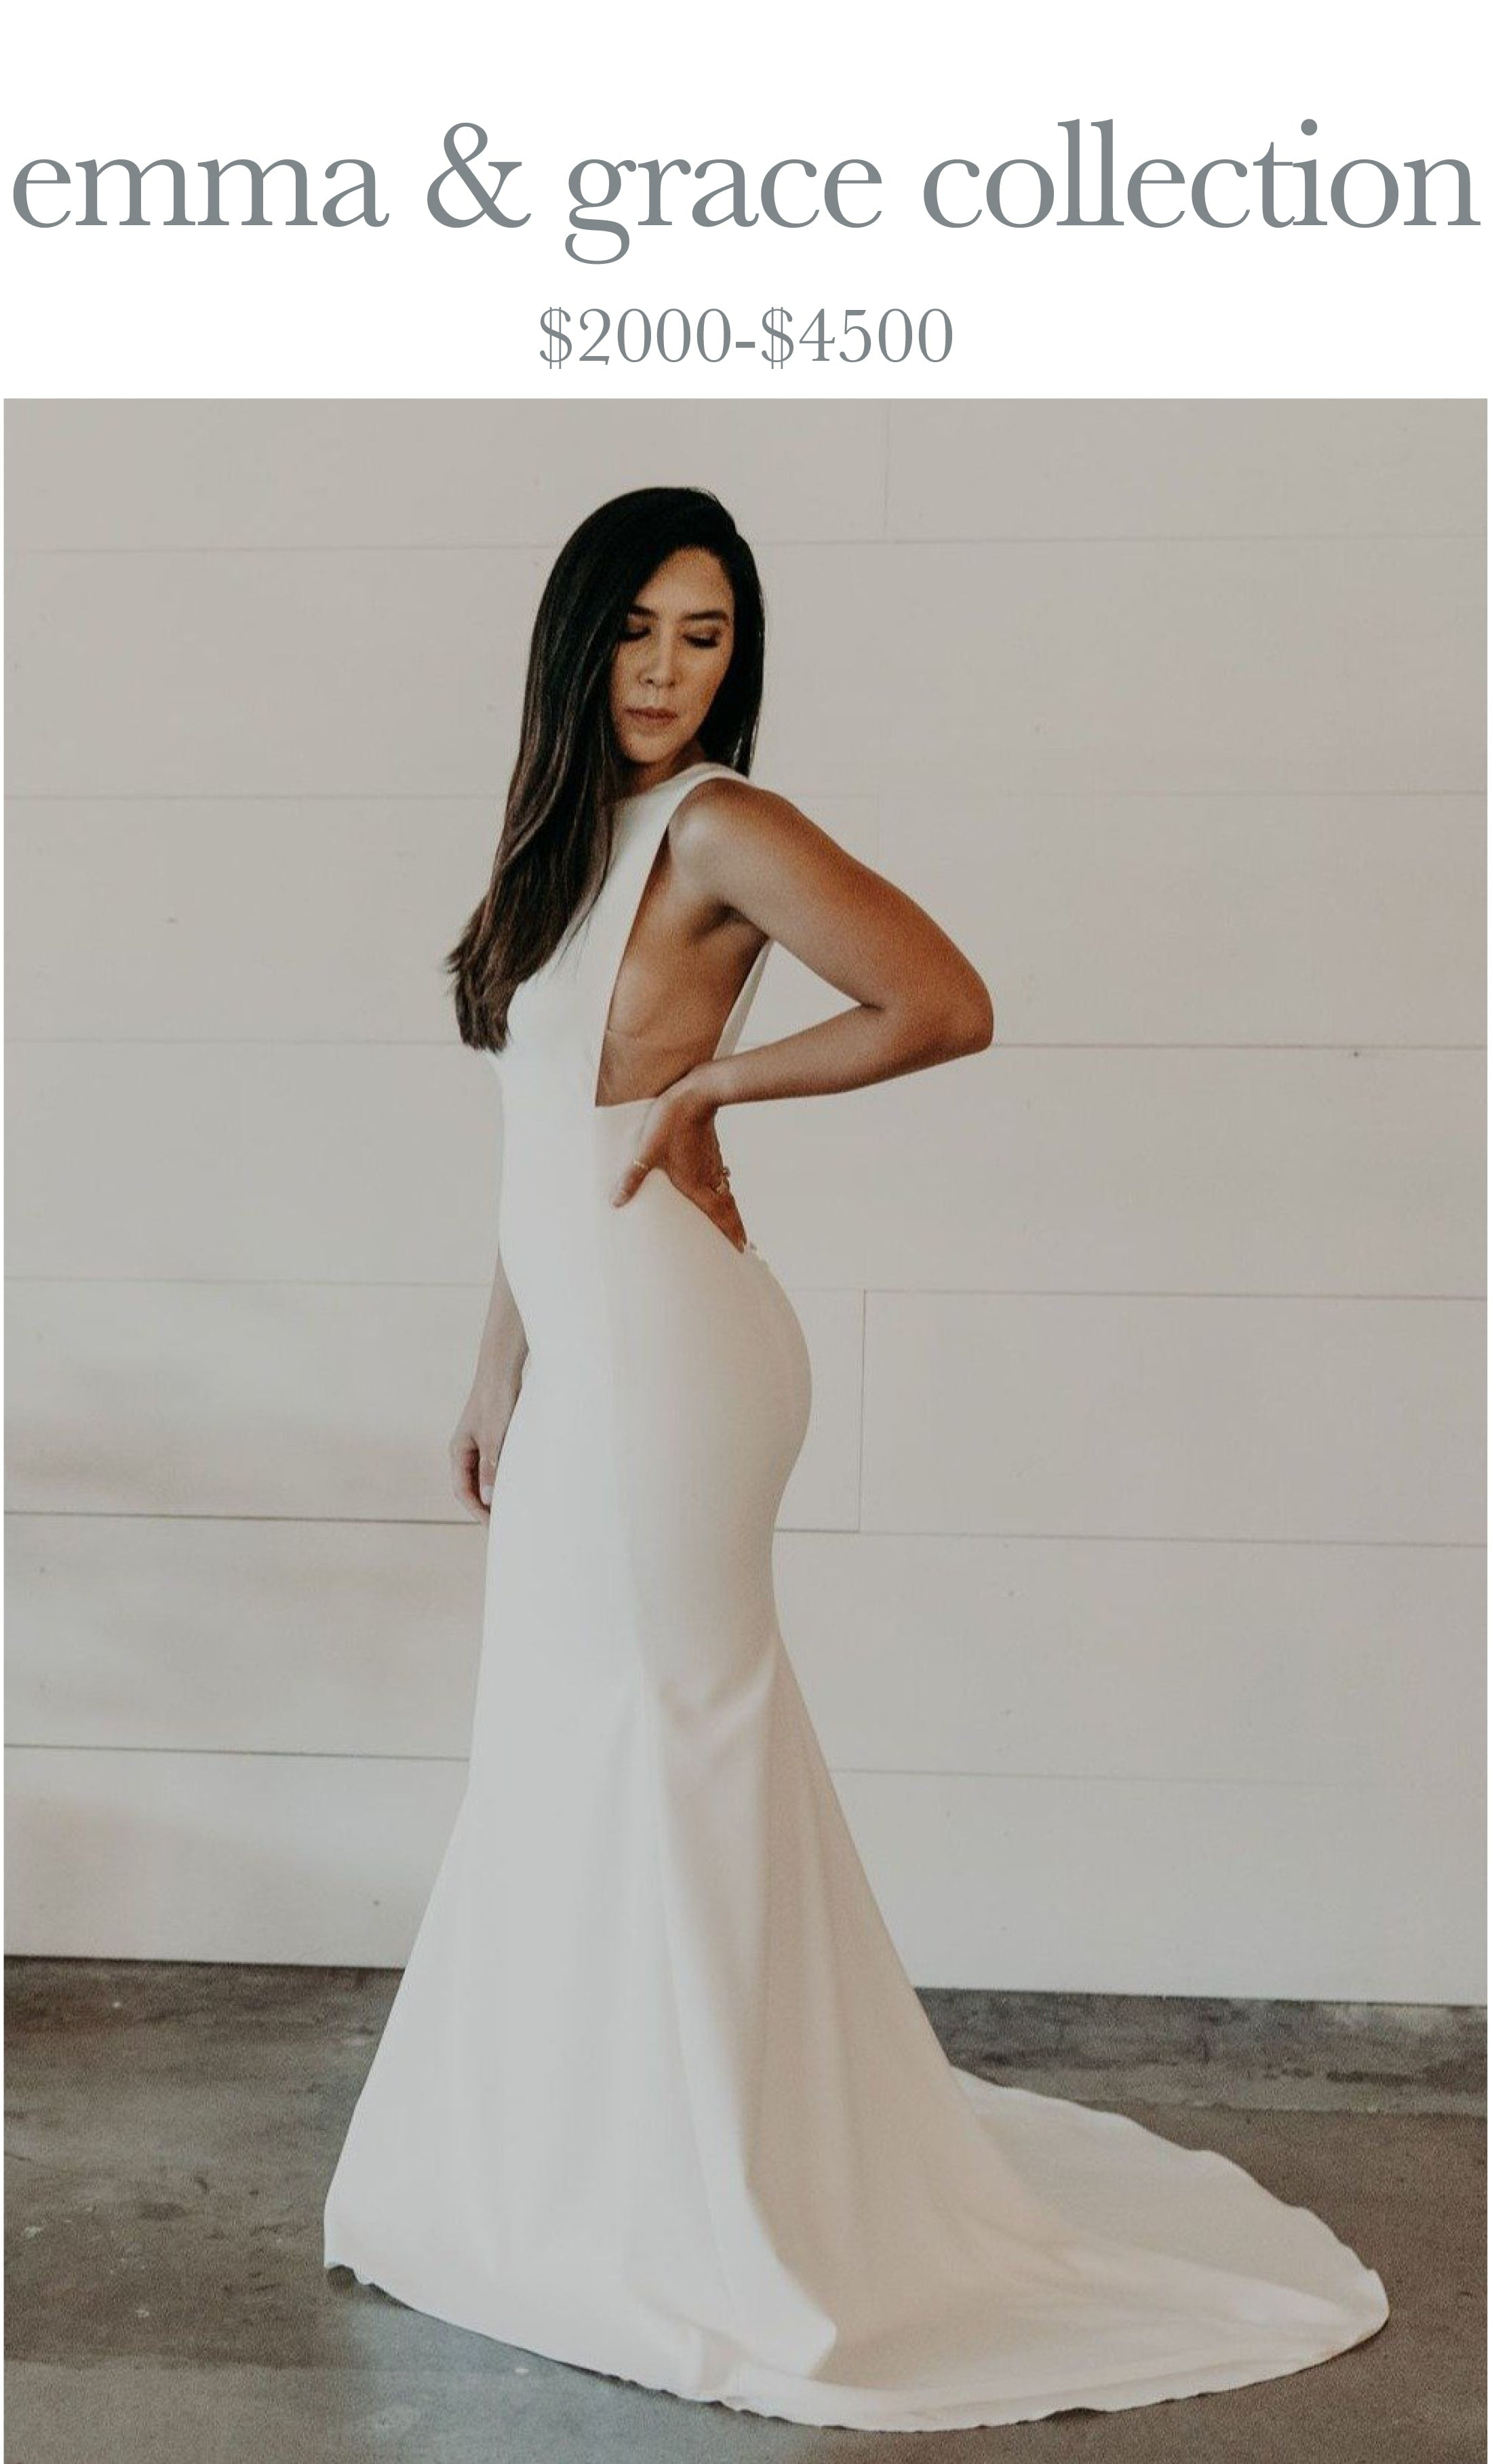 Emma & Grace Collection of wedding gowns